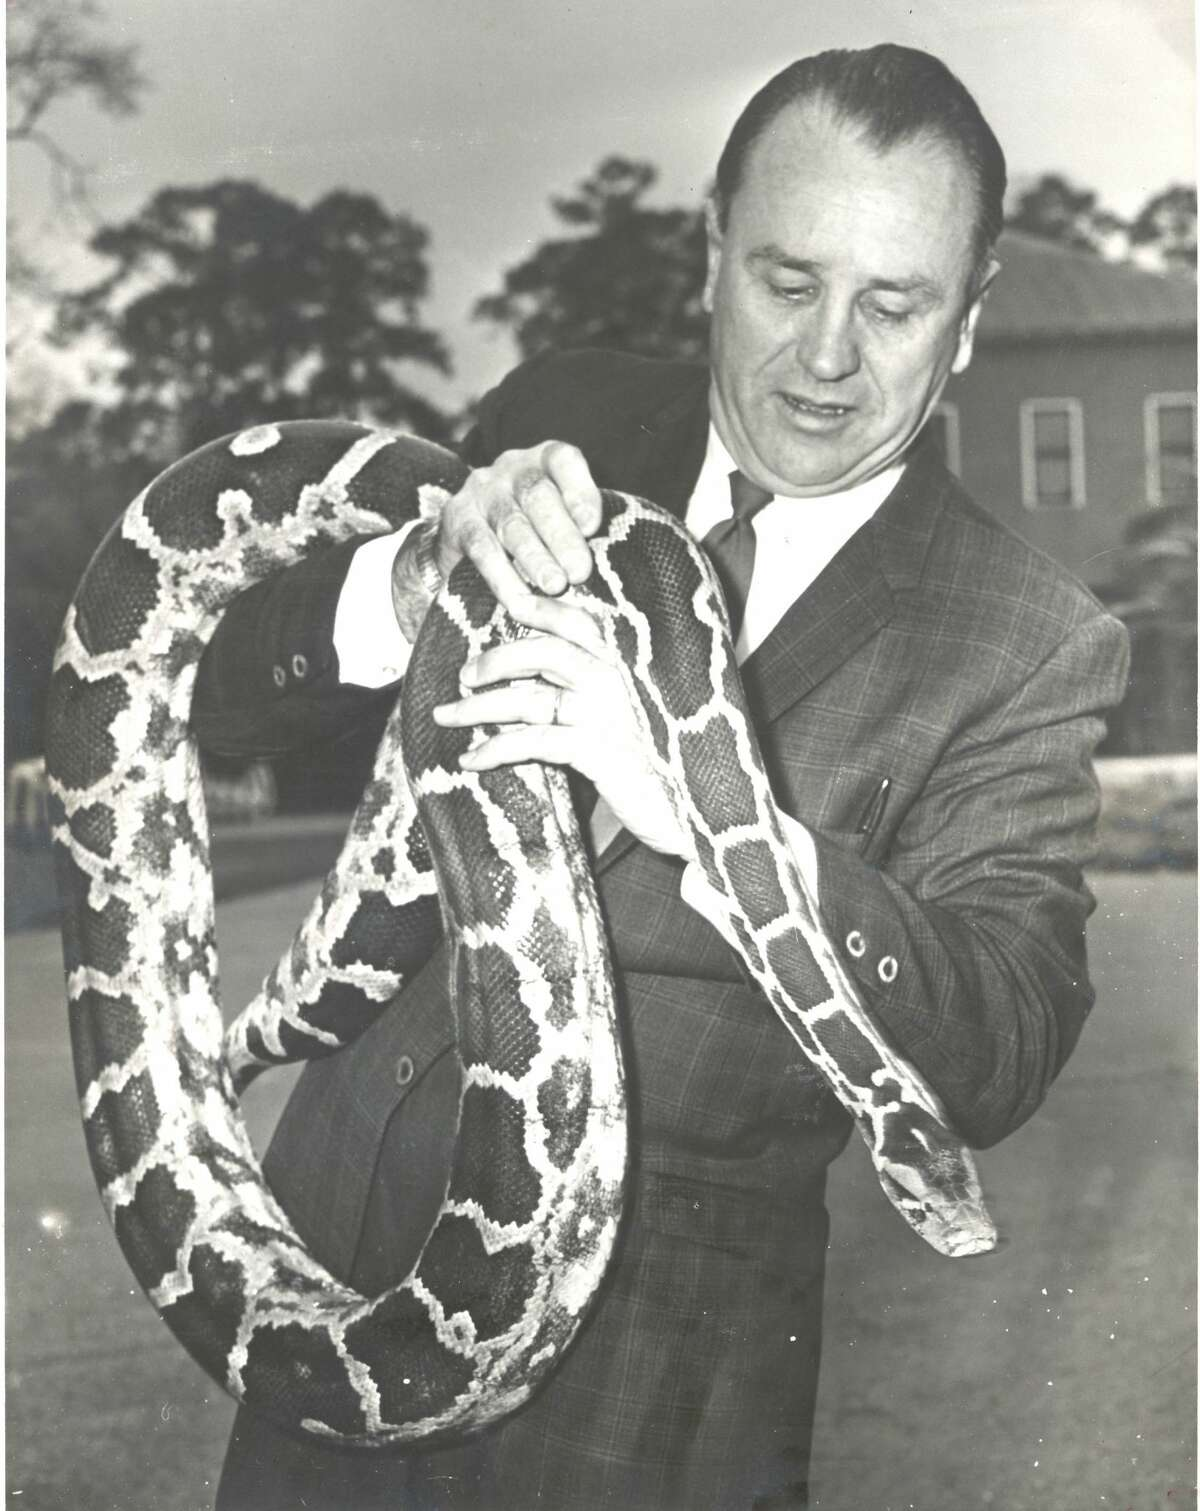 1970: The traveling python of River Oaks, a fugitive from the suitcase of Los Angeles Zoo curator Bill Turner, is clutched here by John Werler, curator of the Hermann Park Zoo. Werler doesn't want the 9-foot snake - Turner had already tried to trade it to the Houston Zoo-- but he has agreed to keep it until his owner takes him home. Police were dubious about taking it to headquarters when they discovered it wandering on Argonne St. on the edge of River Oaks. The snake escaped the suitcase when a burglar robbed the car in which it was being transported. Some burglar got a real surprise.